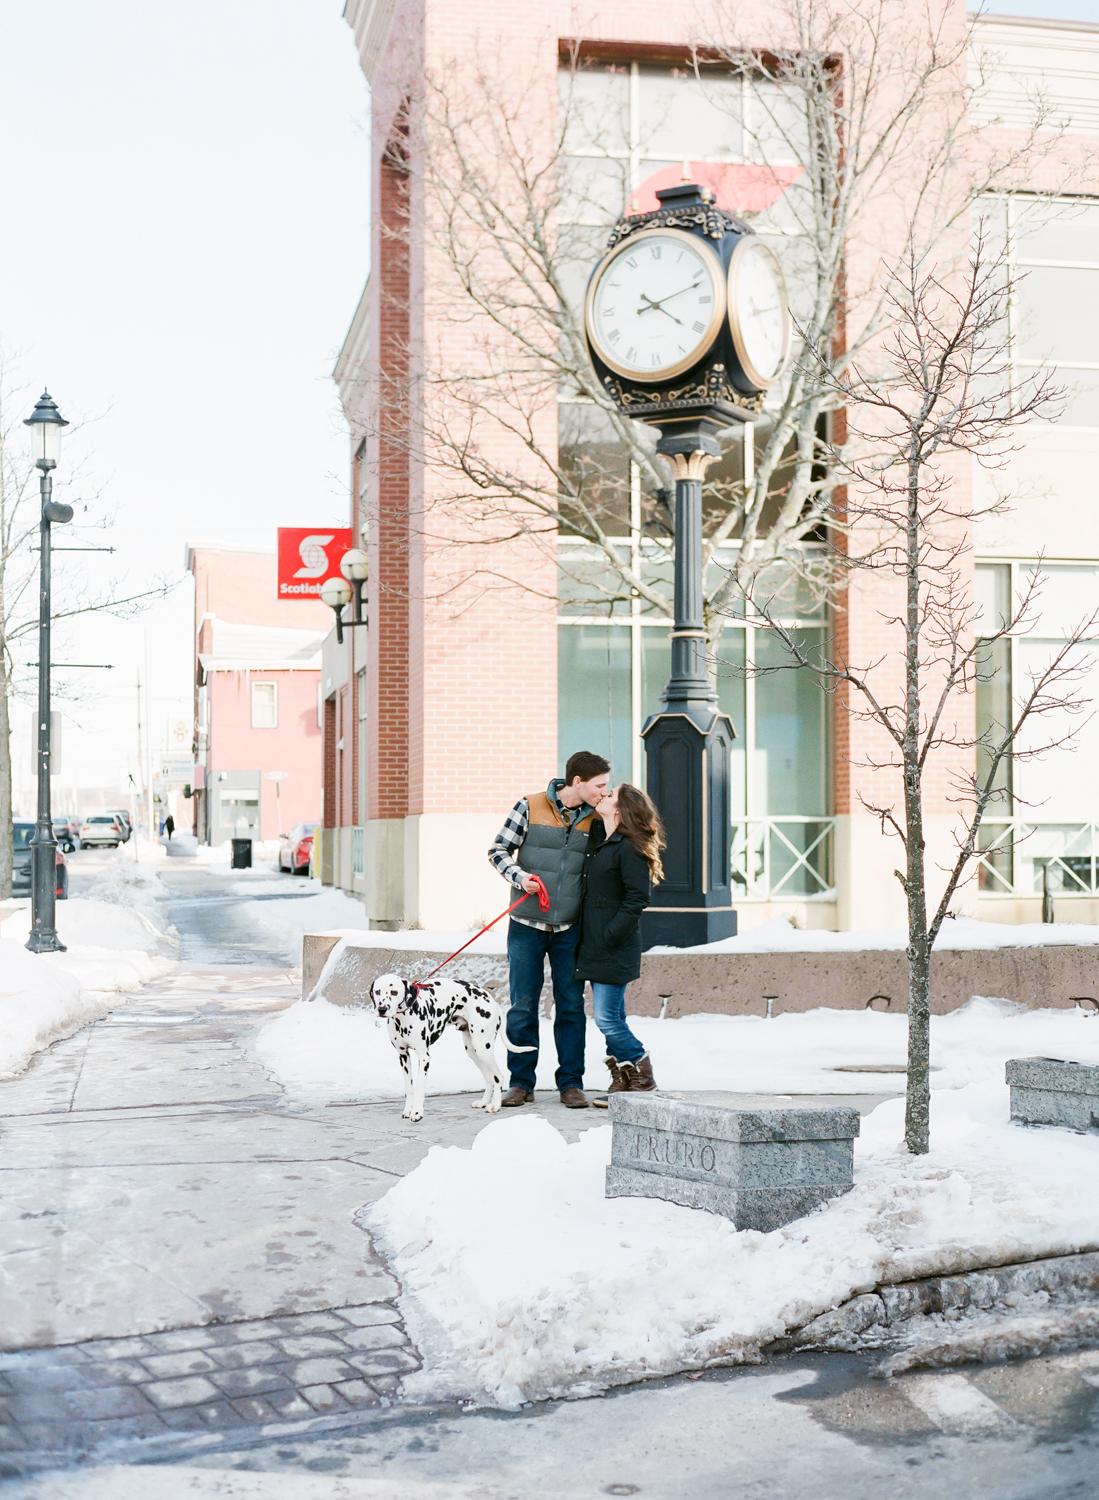 Halifax Wedding Photographer, winter engagement session, Truro Nova Scotia, Canadian Engagement Session, Jacqueline Anne Photography, Film Engagement Session